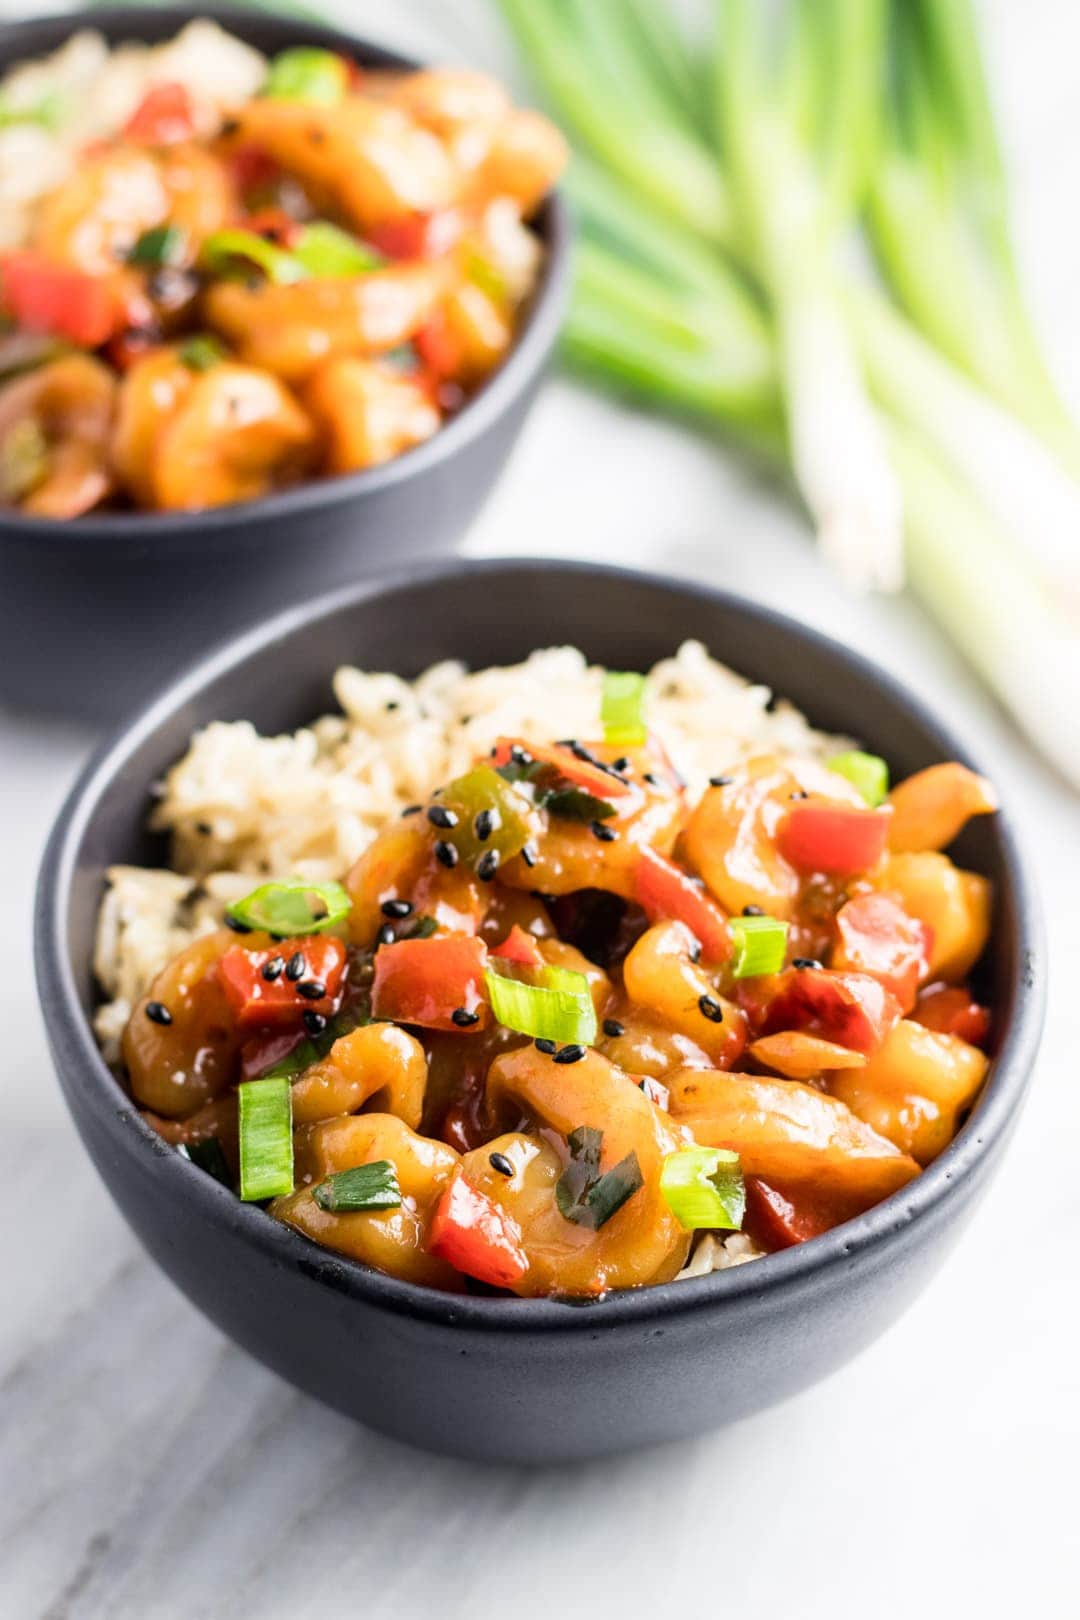 Low FODMAP Shrimp Stir Fry with Bell Peppers